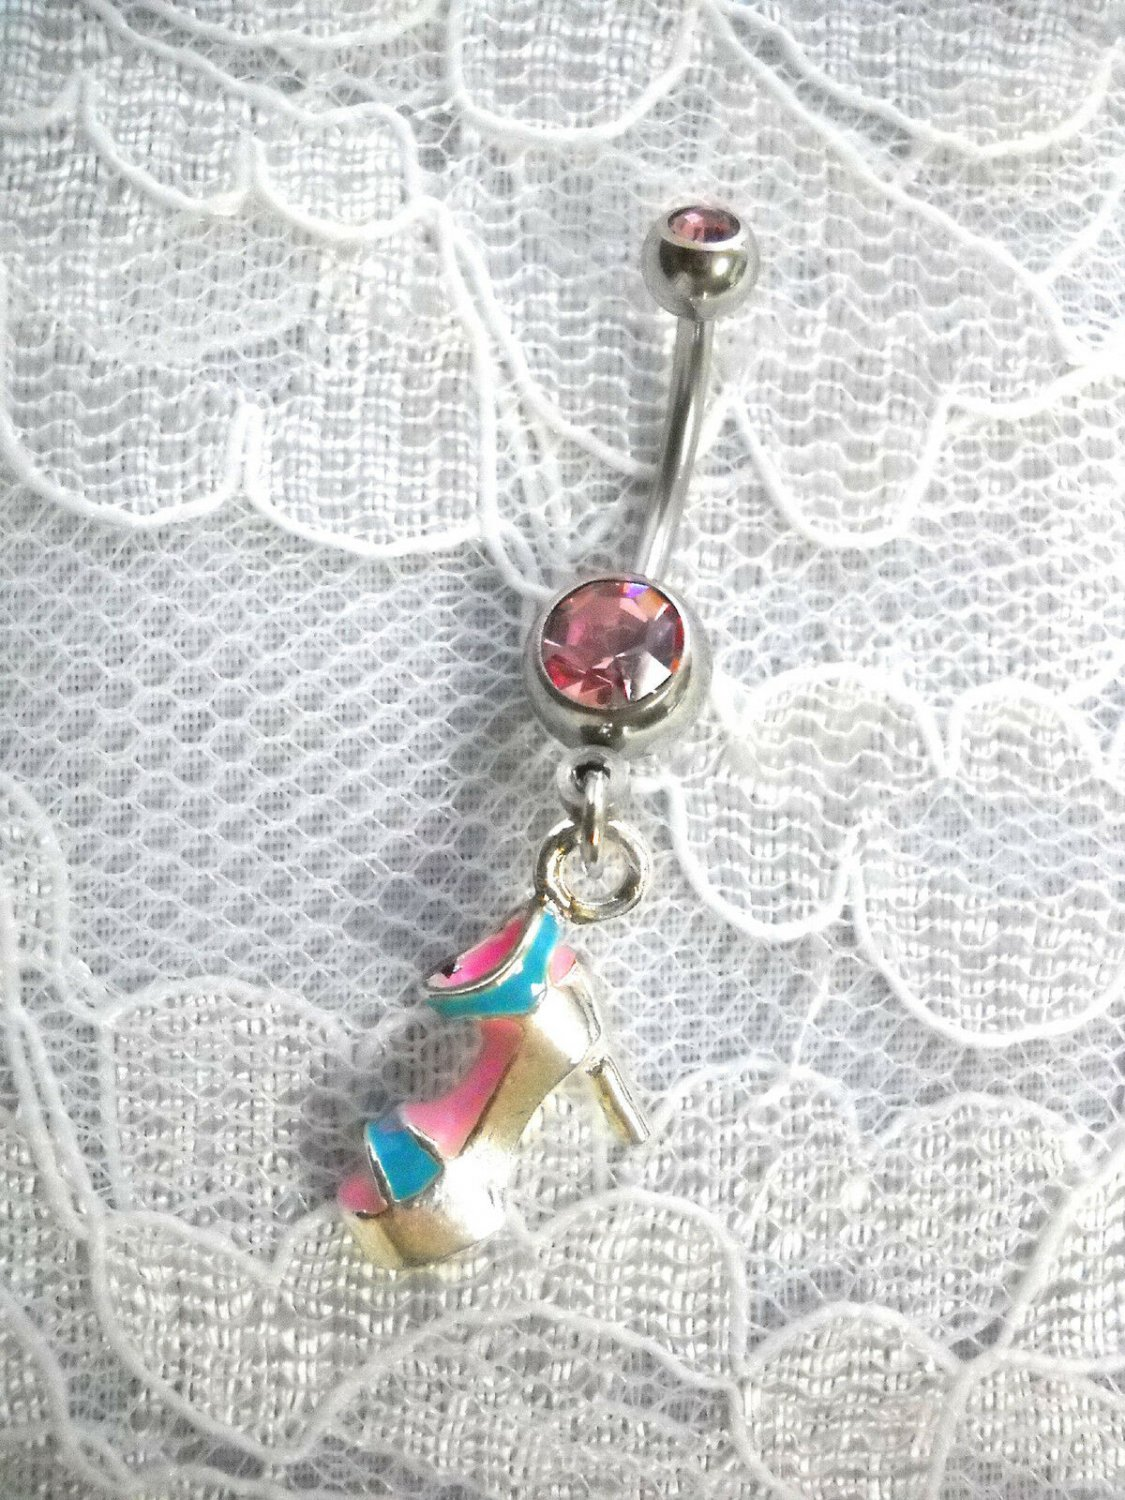 PINK & BABY BLUE PLATFORM SANDAL CHARM PINK CZ BELLY BAR BELLY BUTTON RING SHOES